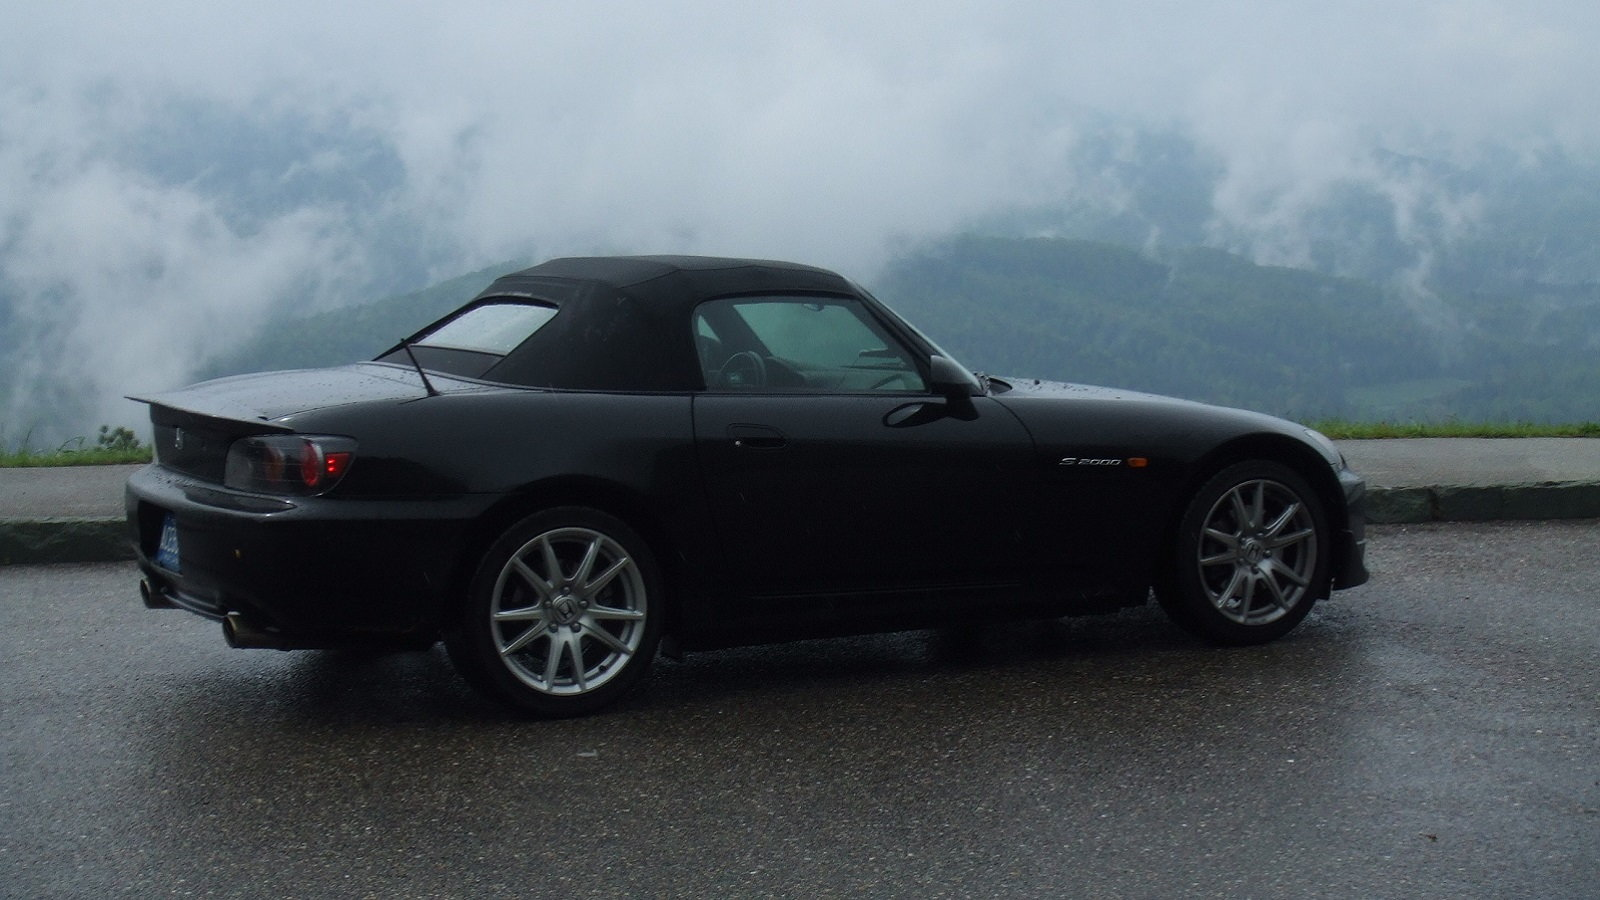 Second Choice S2000 Turns out to Be Number One